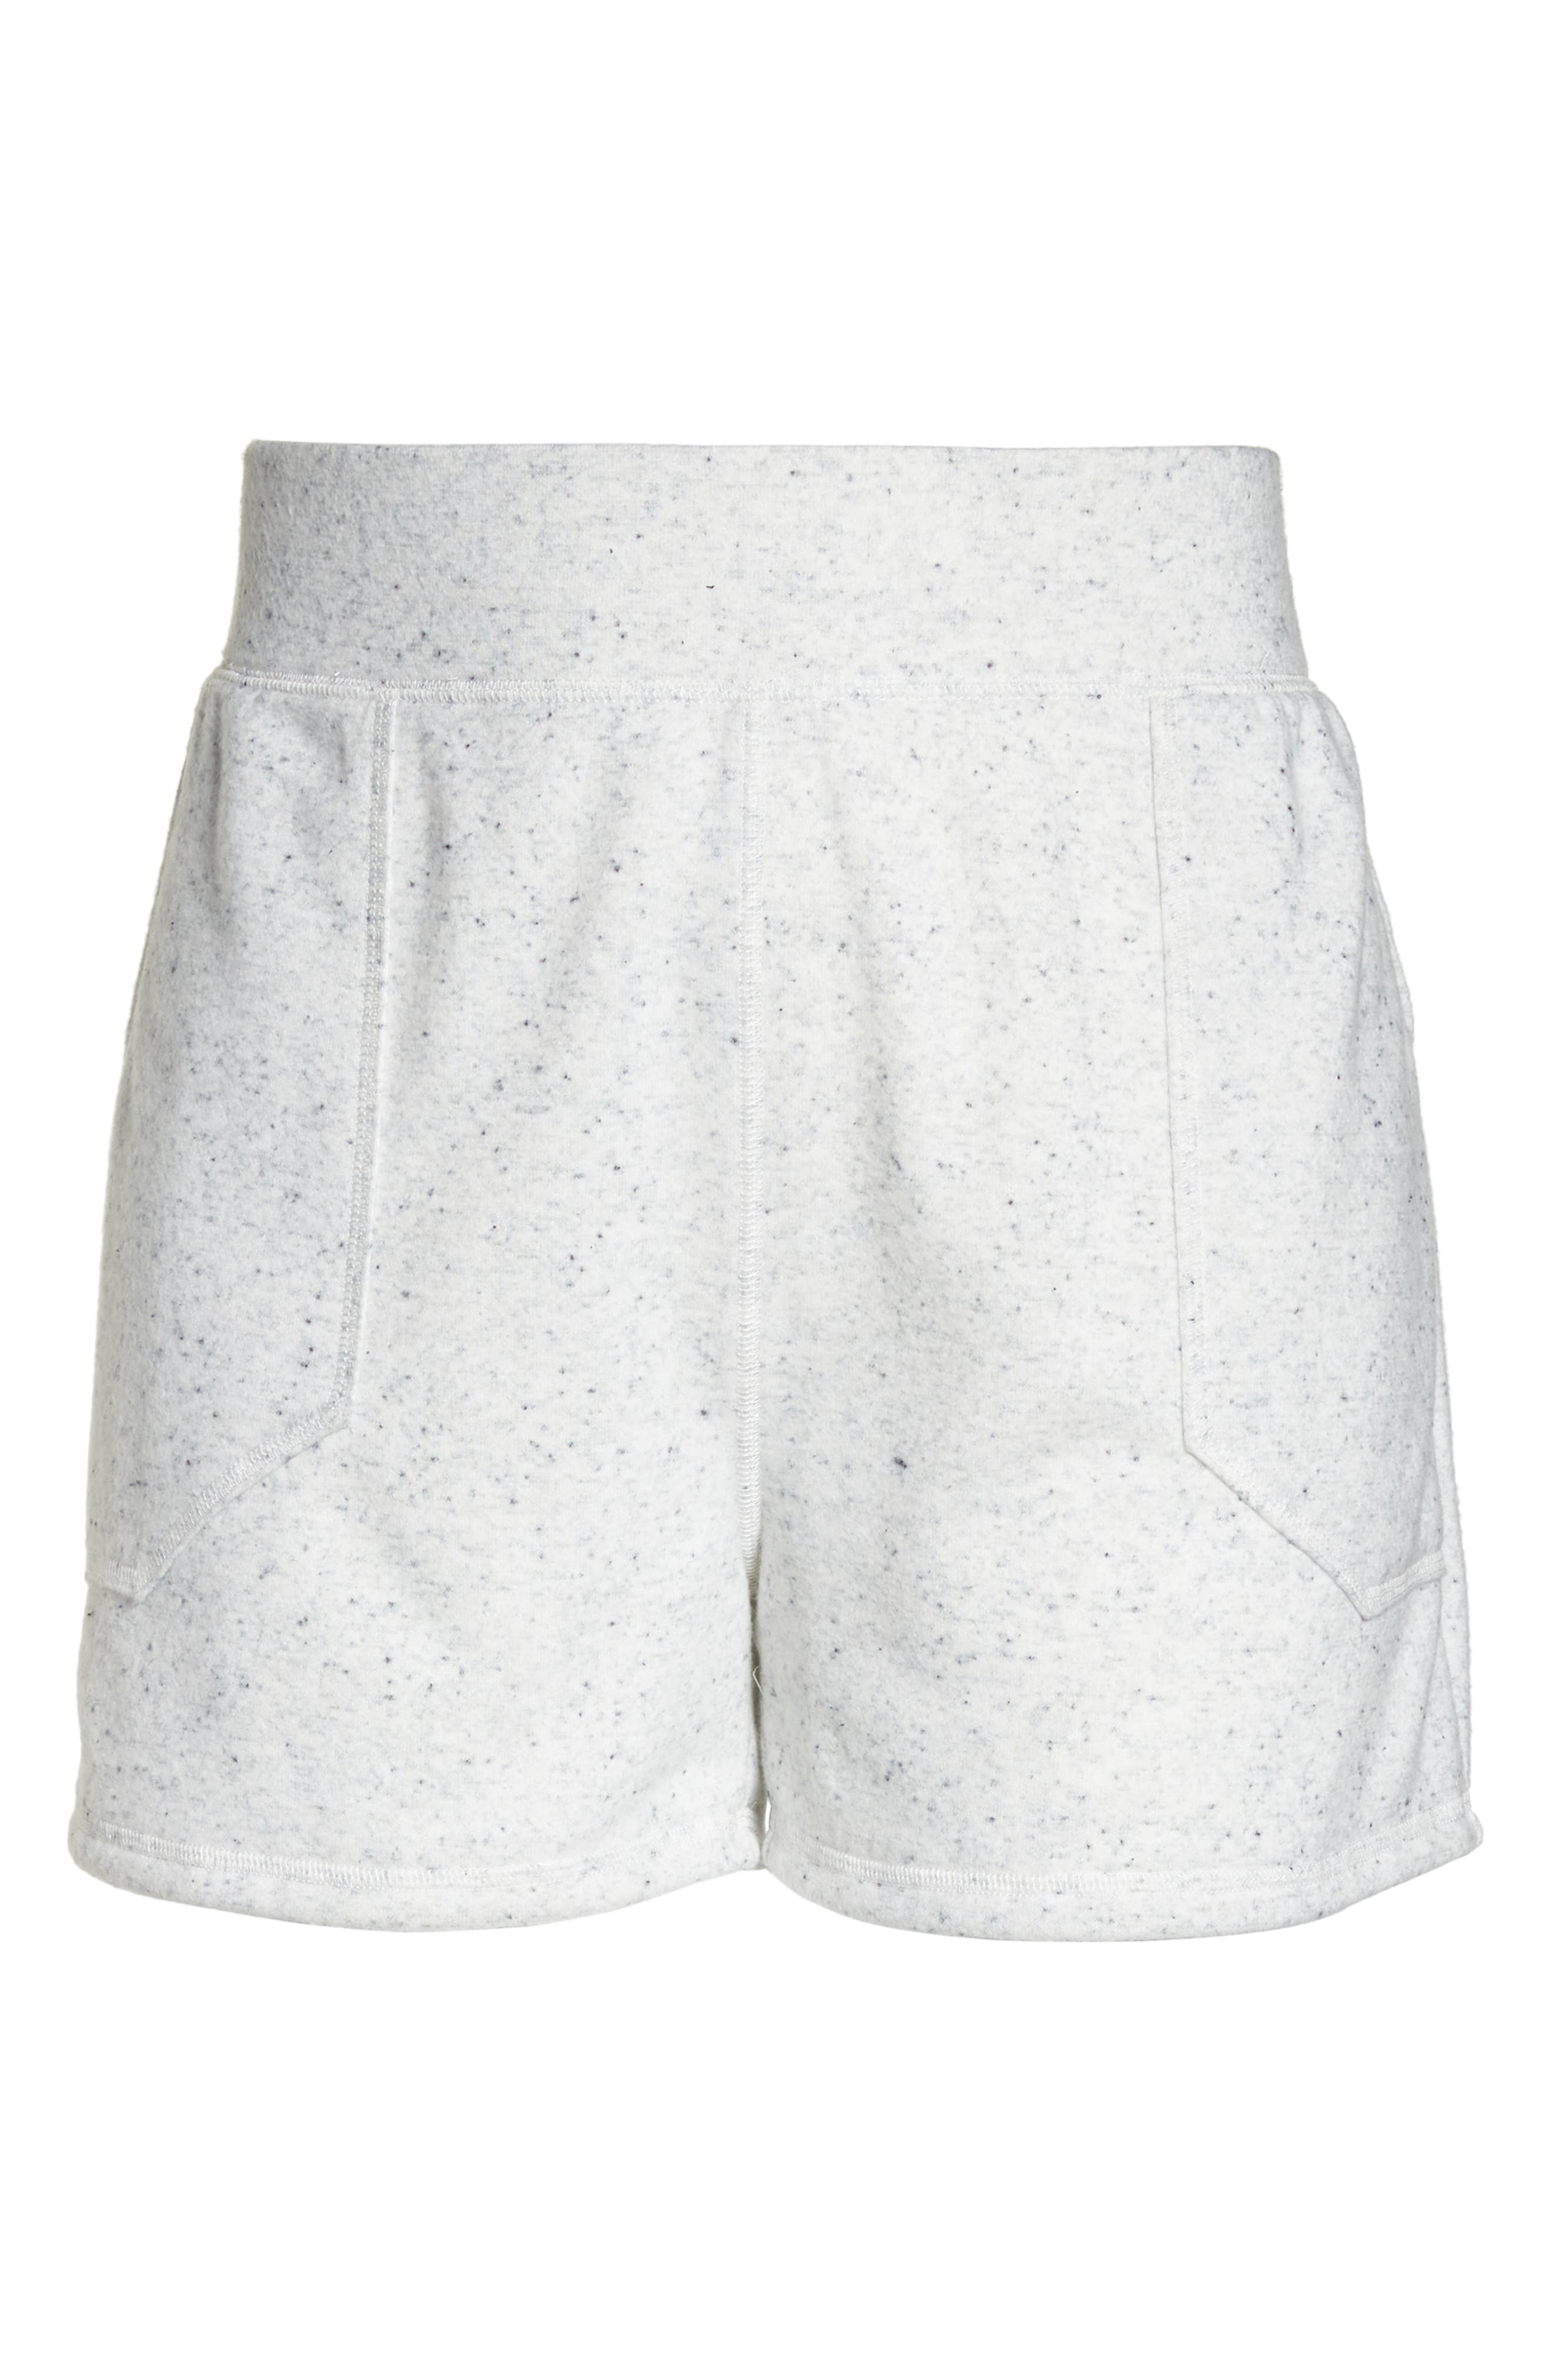 French Terry Shorts,                             Alternate thumbnail 7, color,                             030